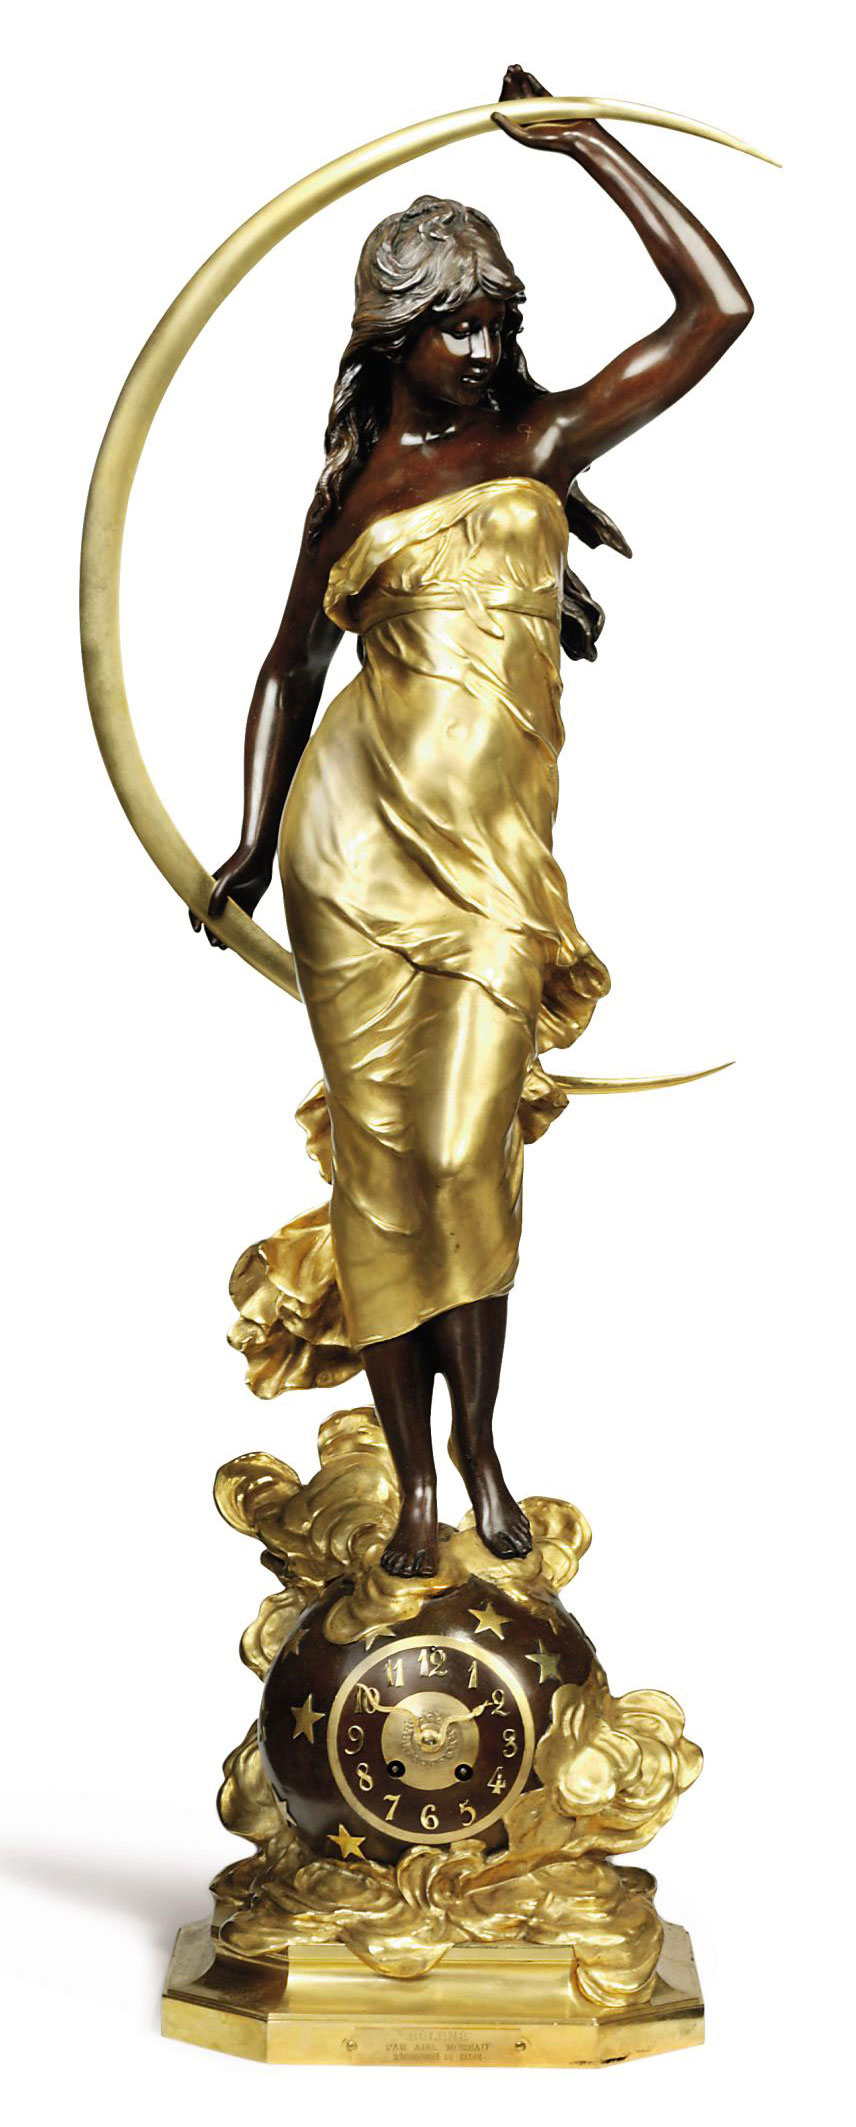 A FRENCH GILT AND PATINATED BRONZE FIGURAL CLOCK ENTITLED 'SELENE'